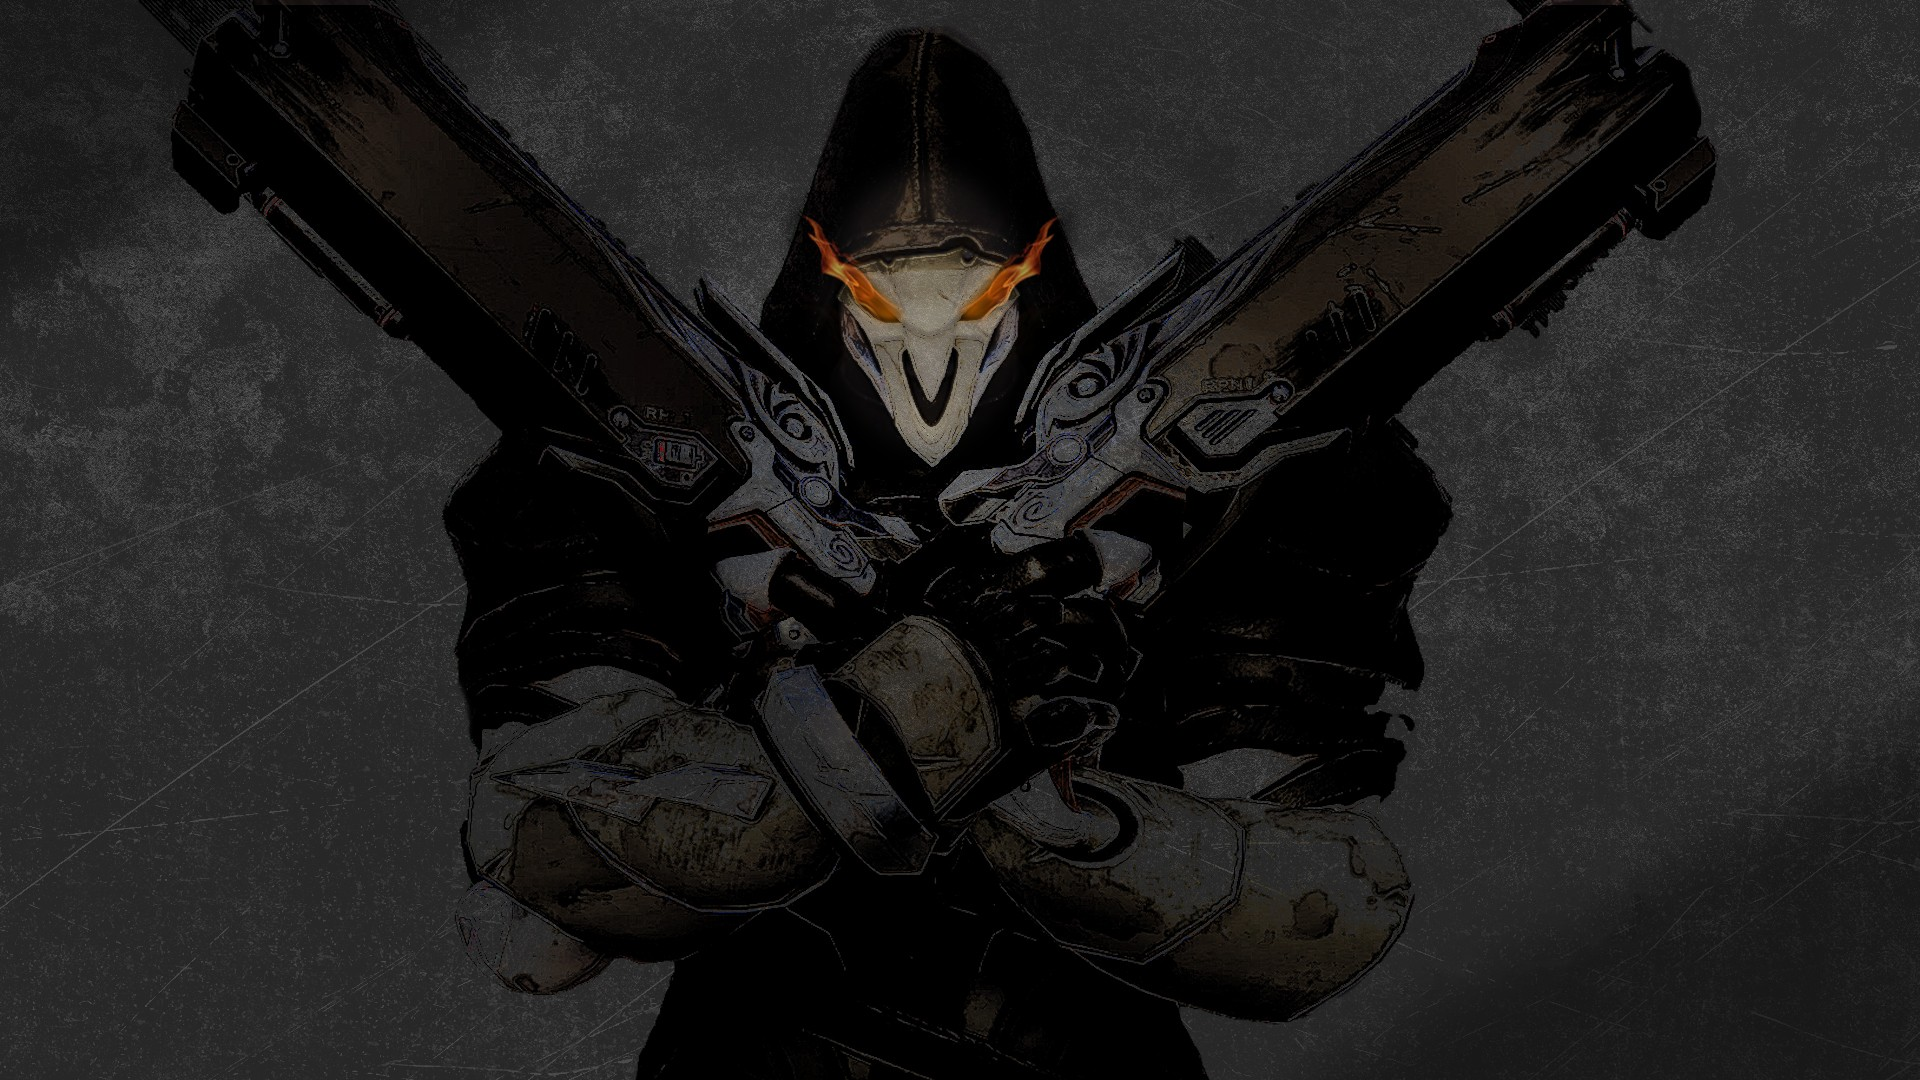 Overwatch Reaper wallpaper ·① Download free awesome HD ...